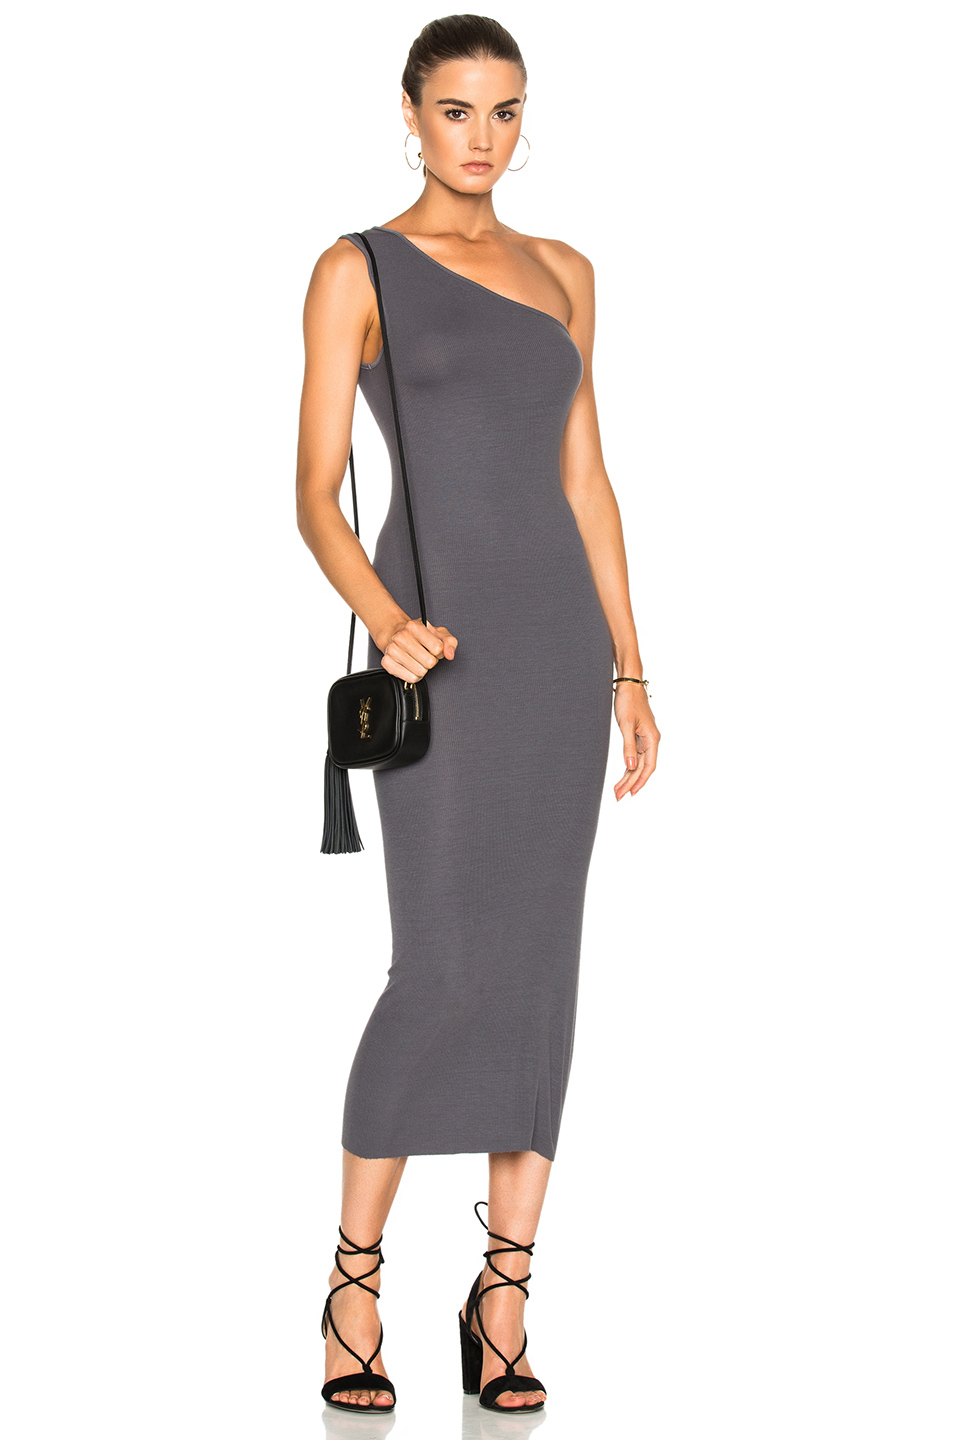 Enza Costa Rib One Shoulder Midi Dress in Gray